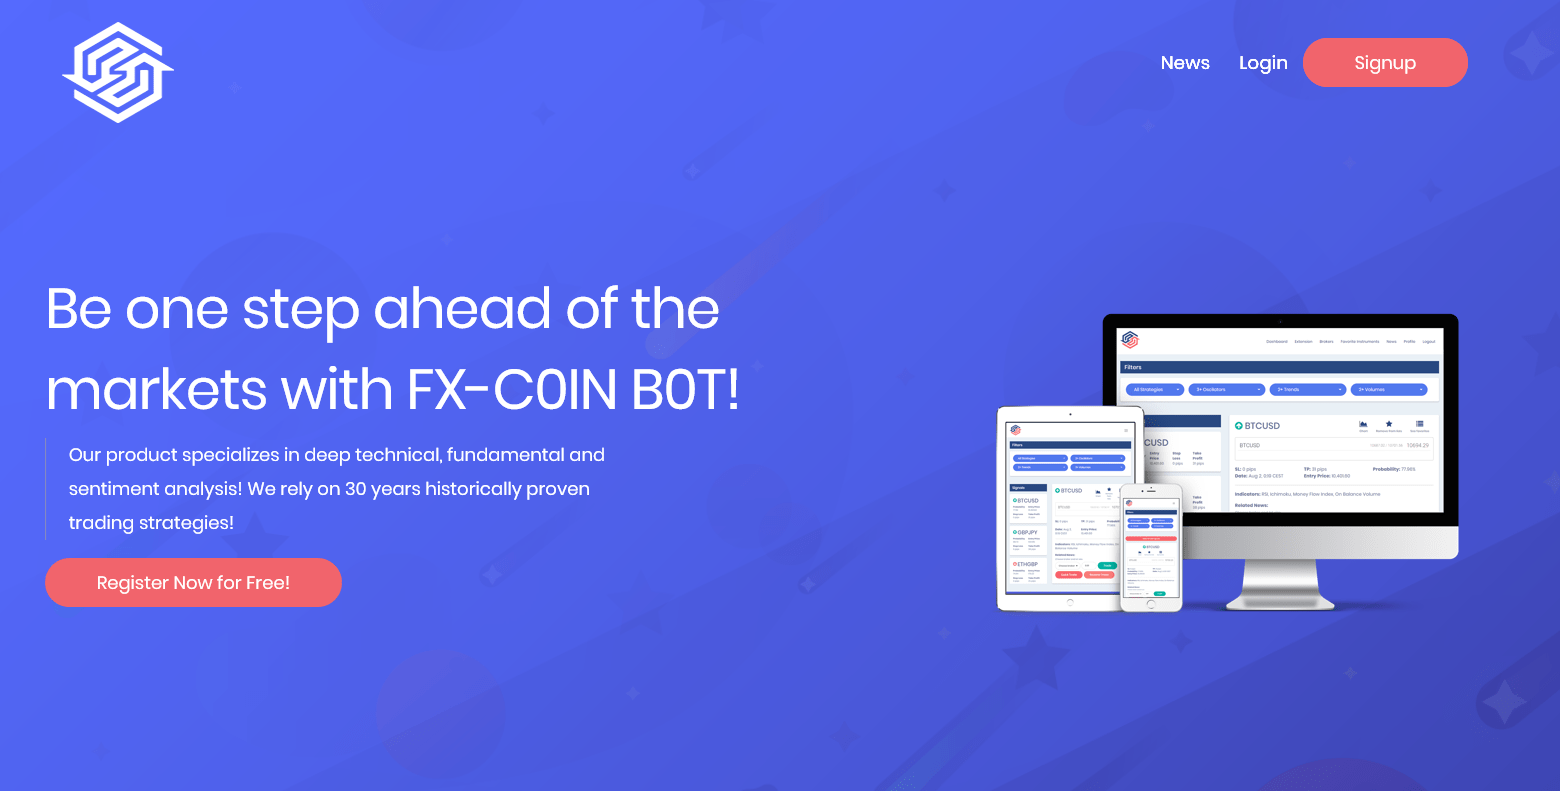 Top 3 des bots de trading open source ayant des implications pour Binance »NullTX